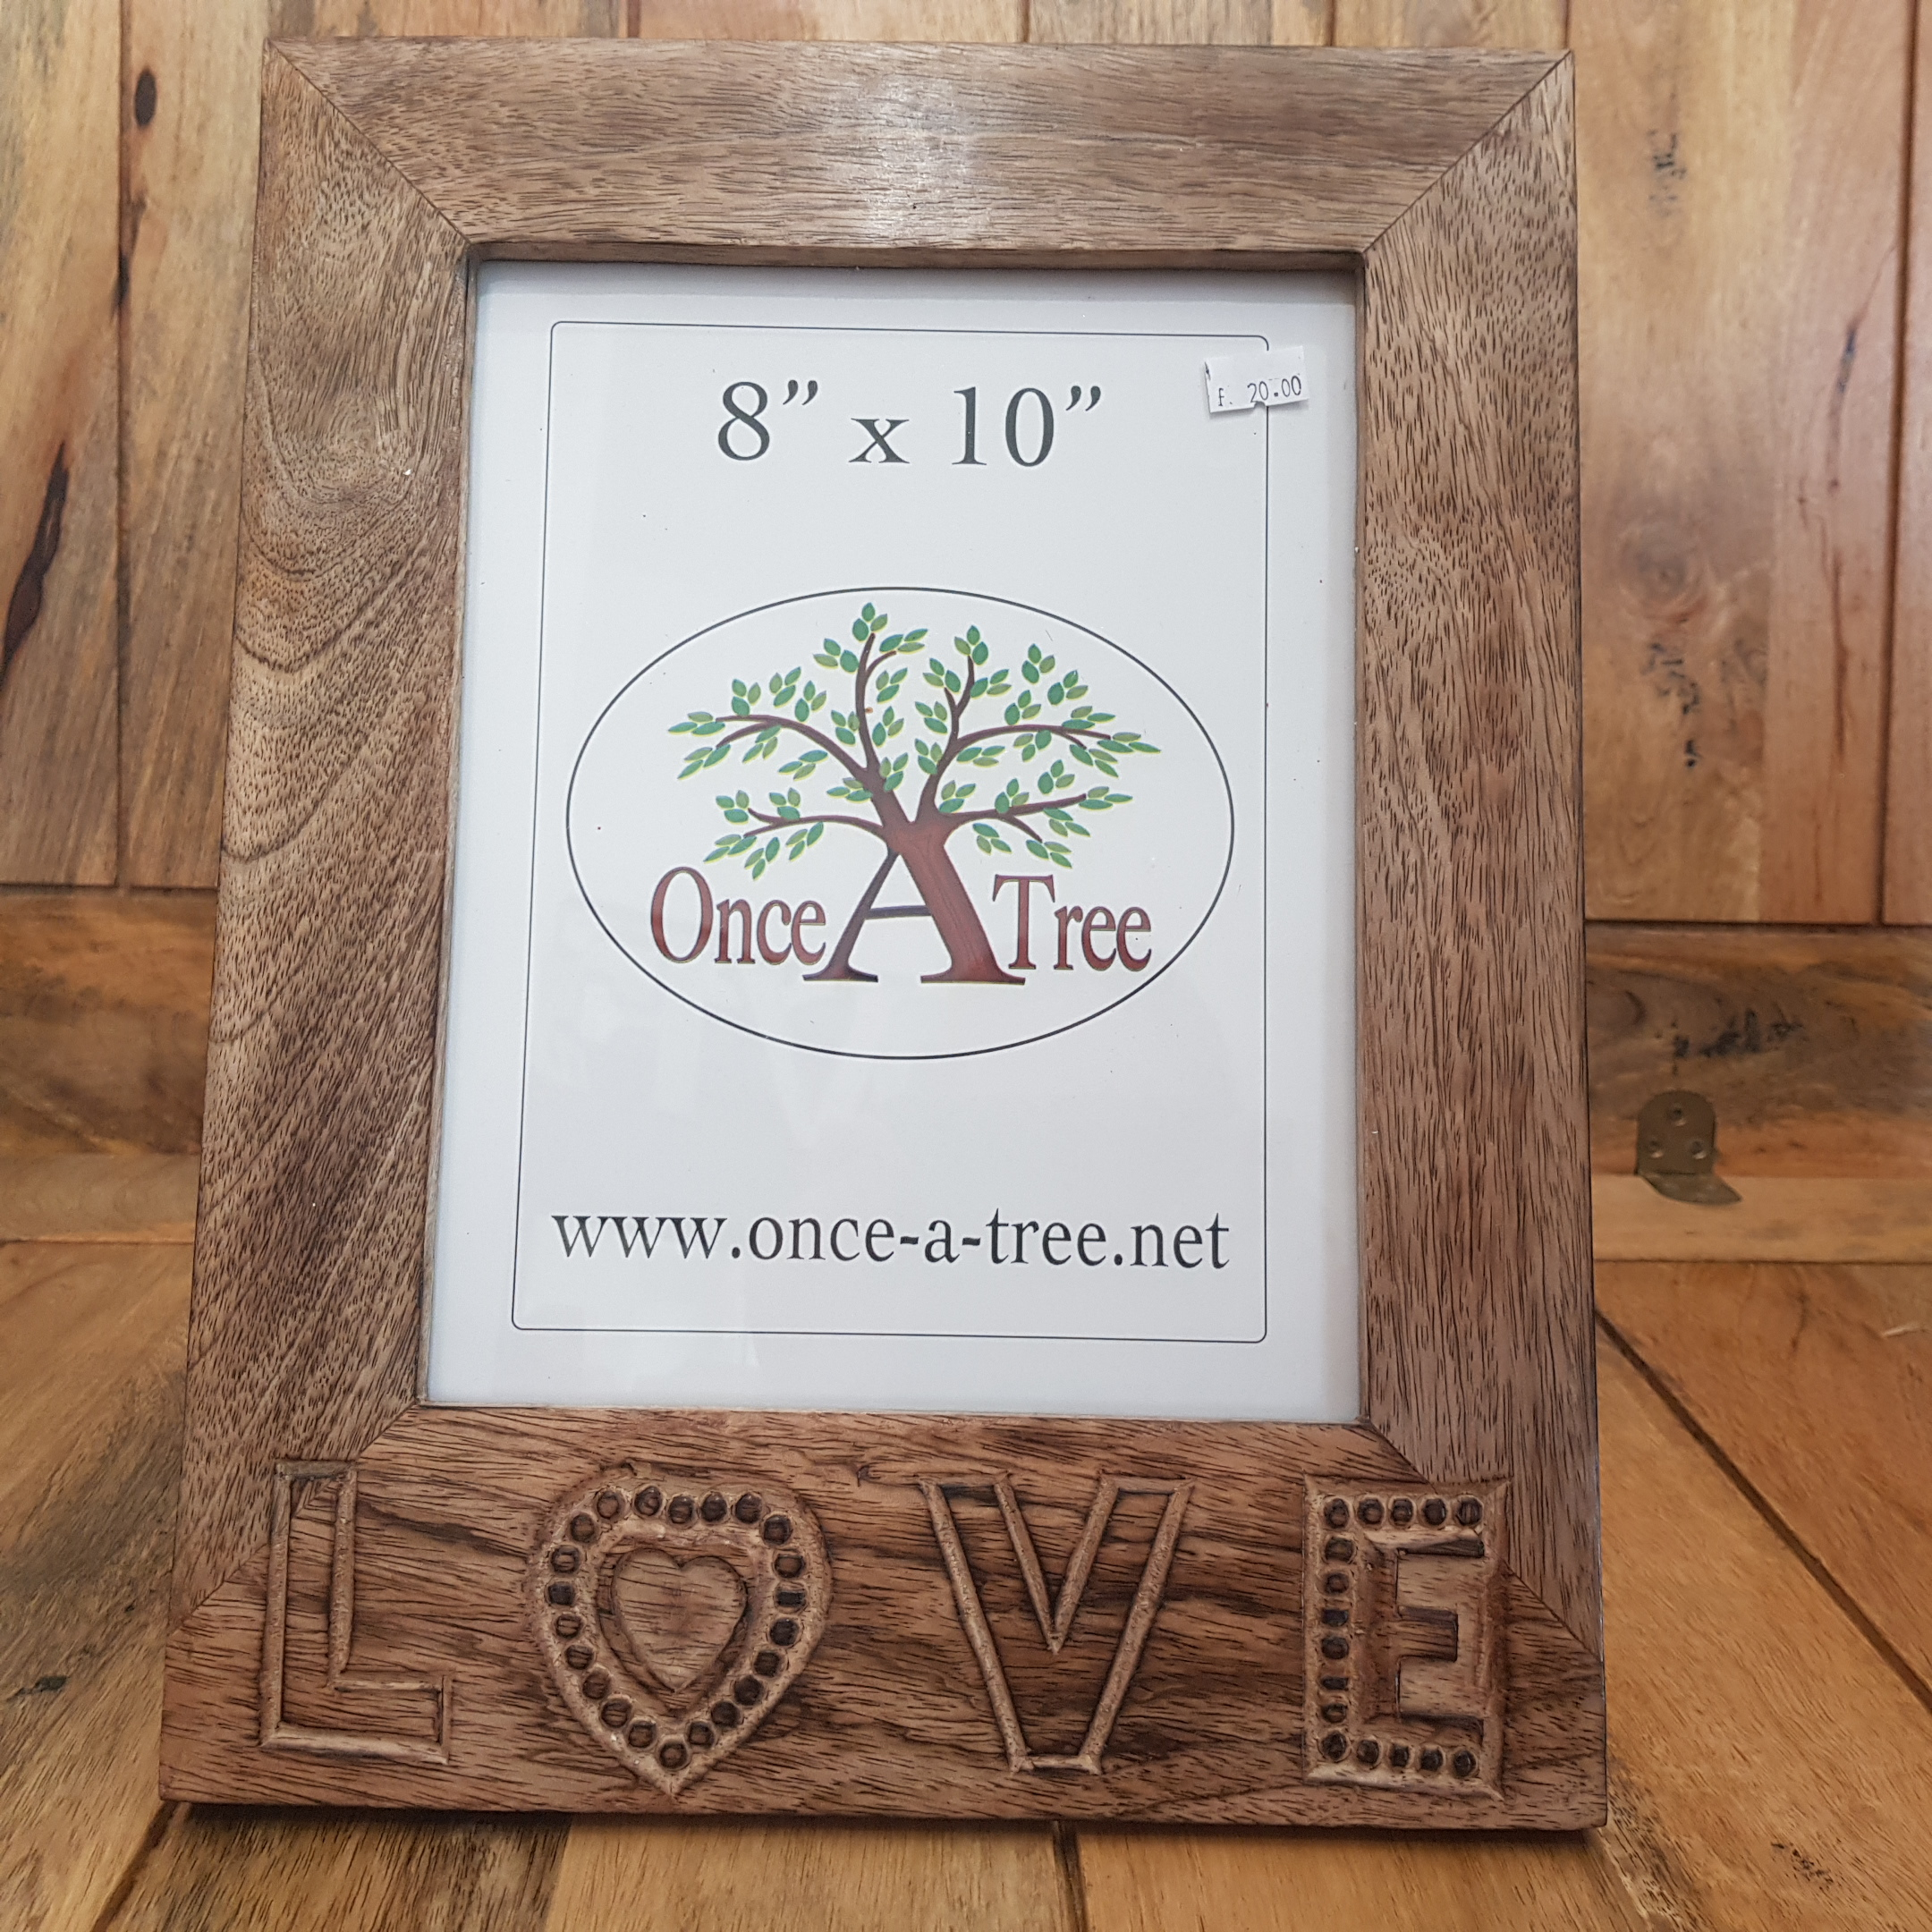 Once a Tree Love Large Photo Frame 8x10 Inch